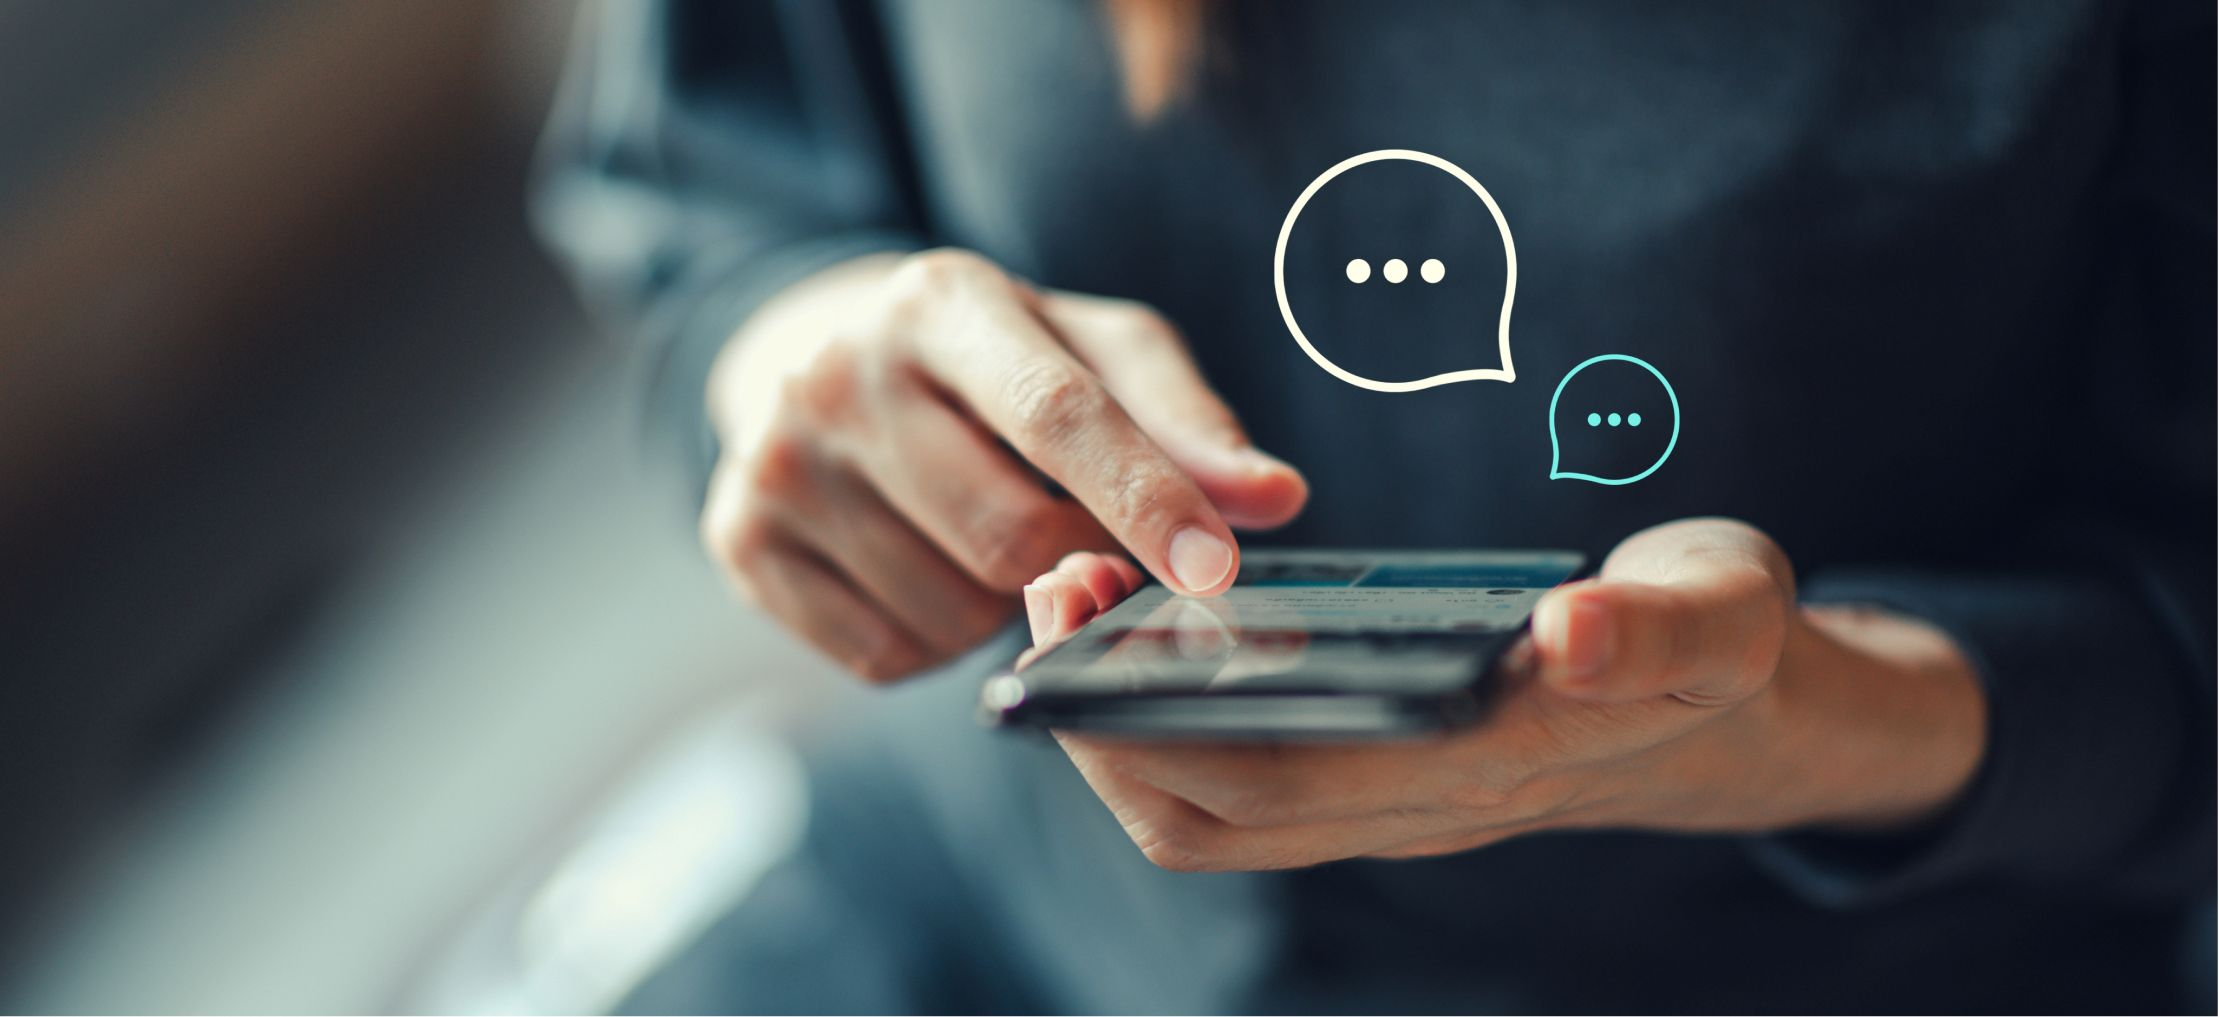 Conversational Commerce - All information at a glance